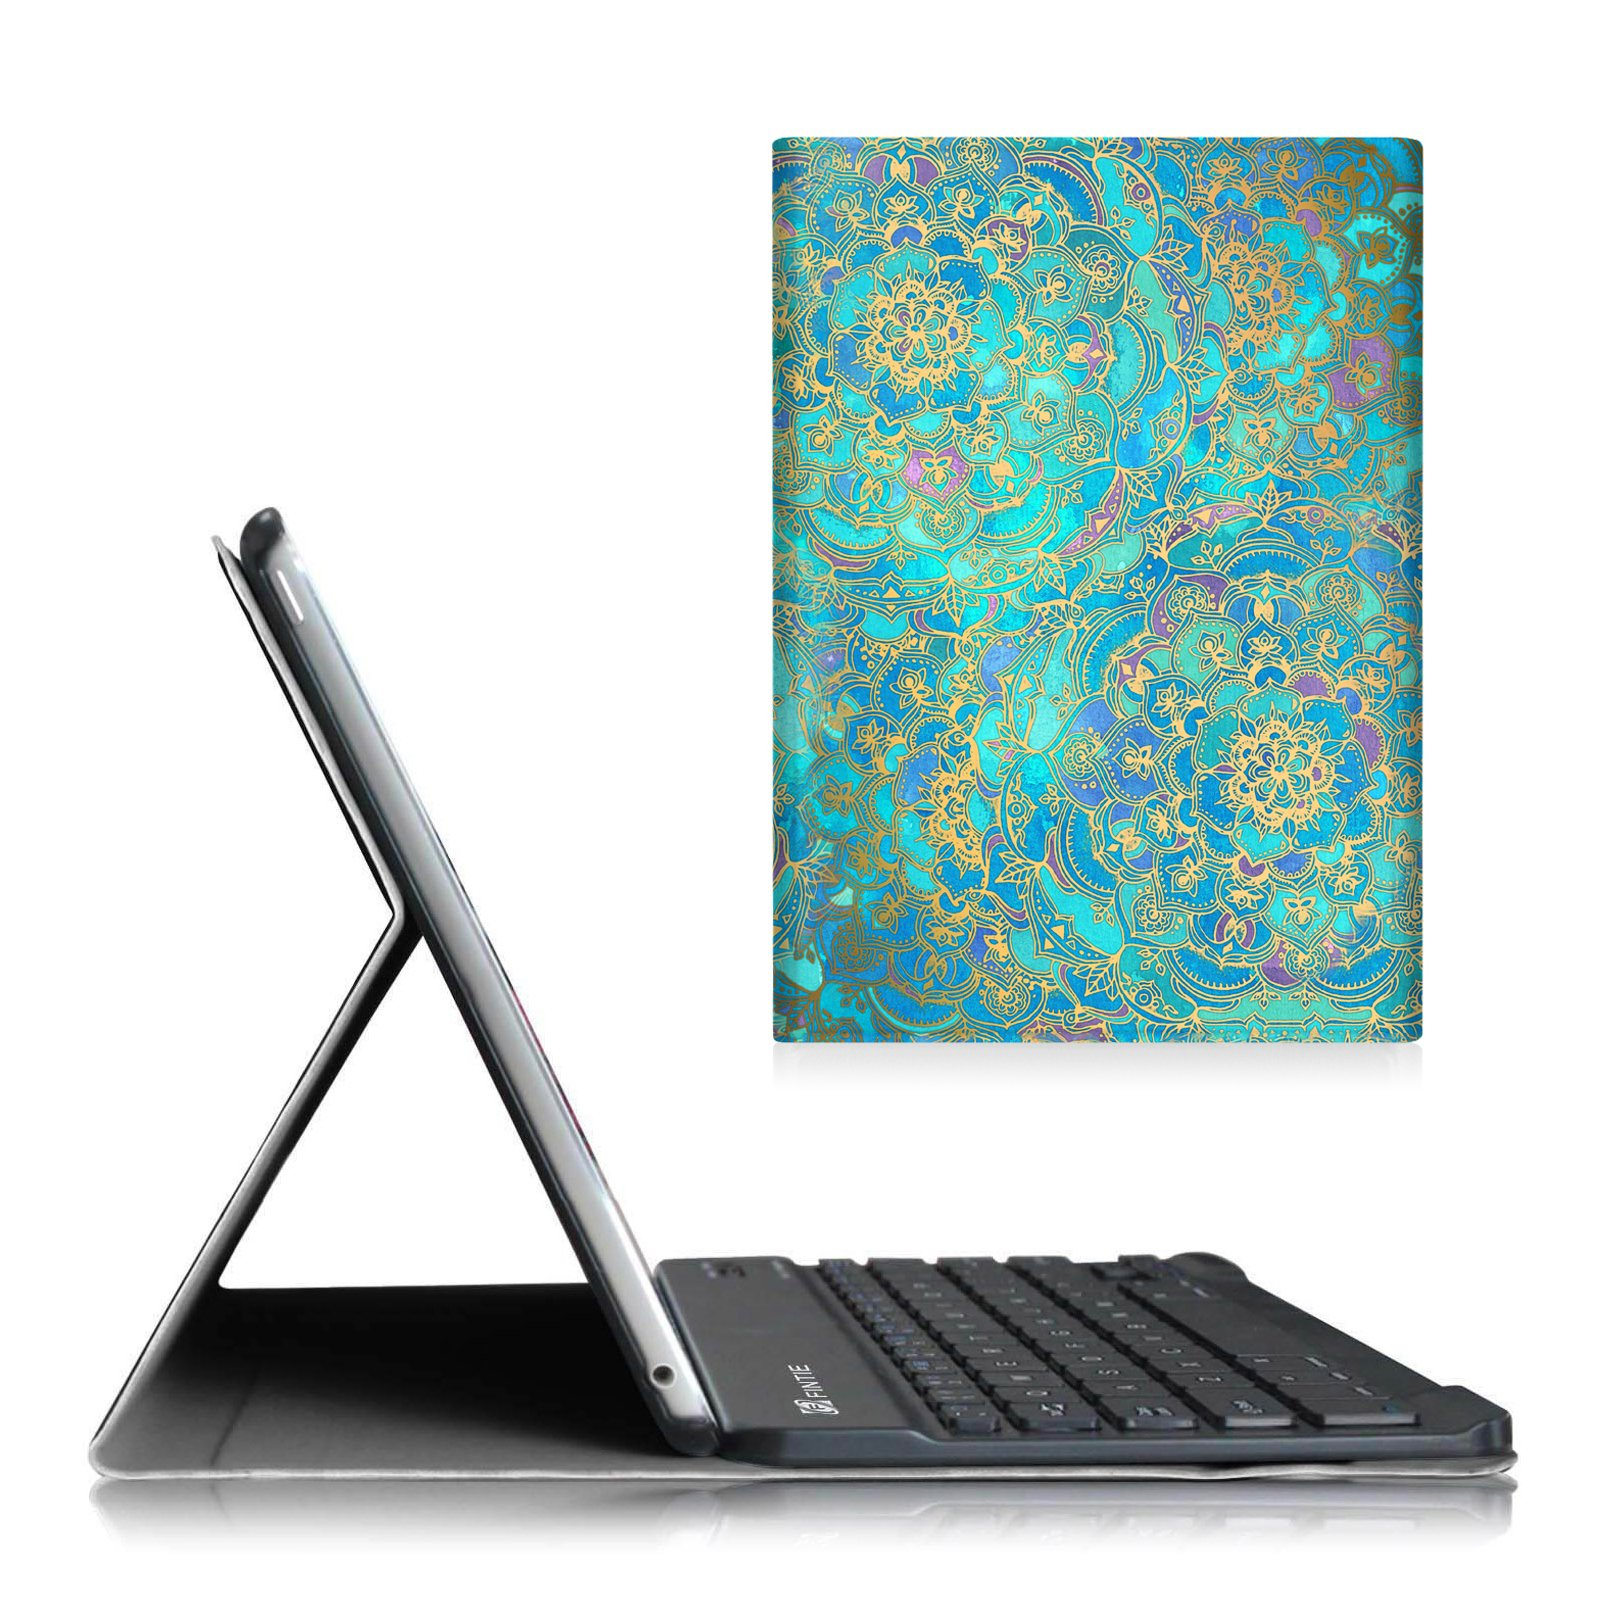 Fintie Blade X1 iPad Air 2 Keyboard Case - Slim Shell Lightweight Stand Cover with Magnetically Detachable Wireless Bluetooth Keyboard for Apple iPad Air 2 (2014 Model), Shades of Blue by Fintie